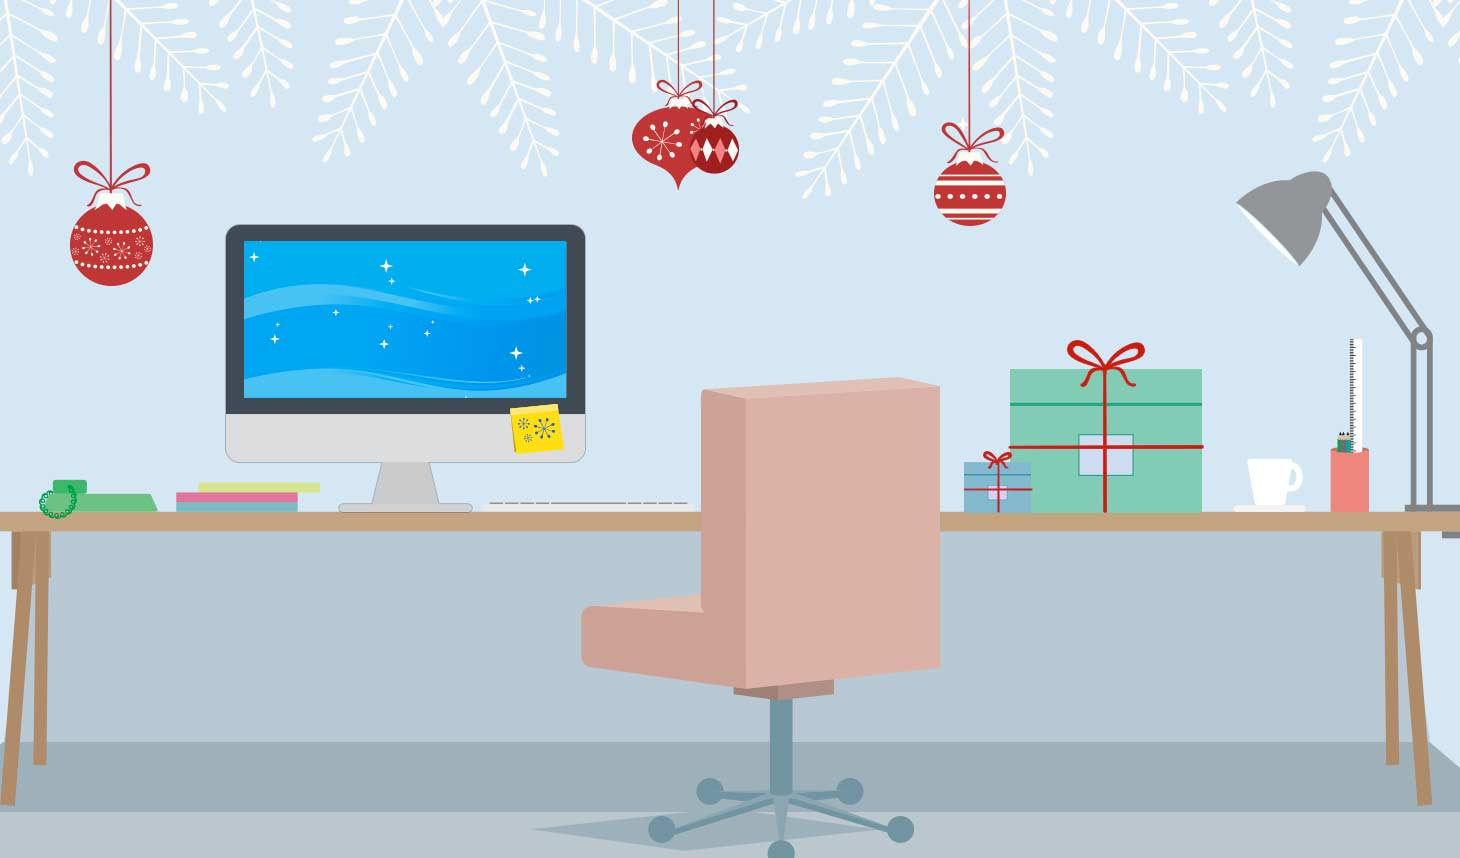 Decorating Your Cubicle for the Holidays